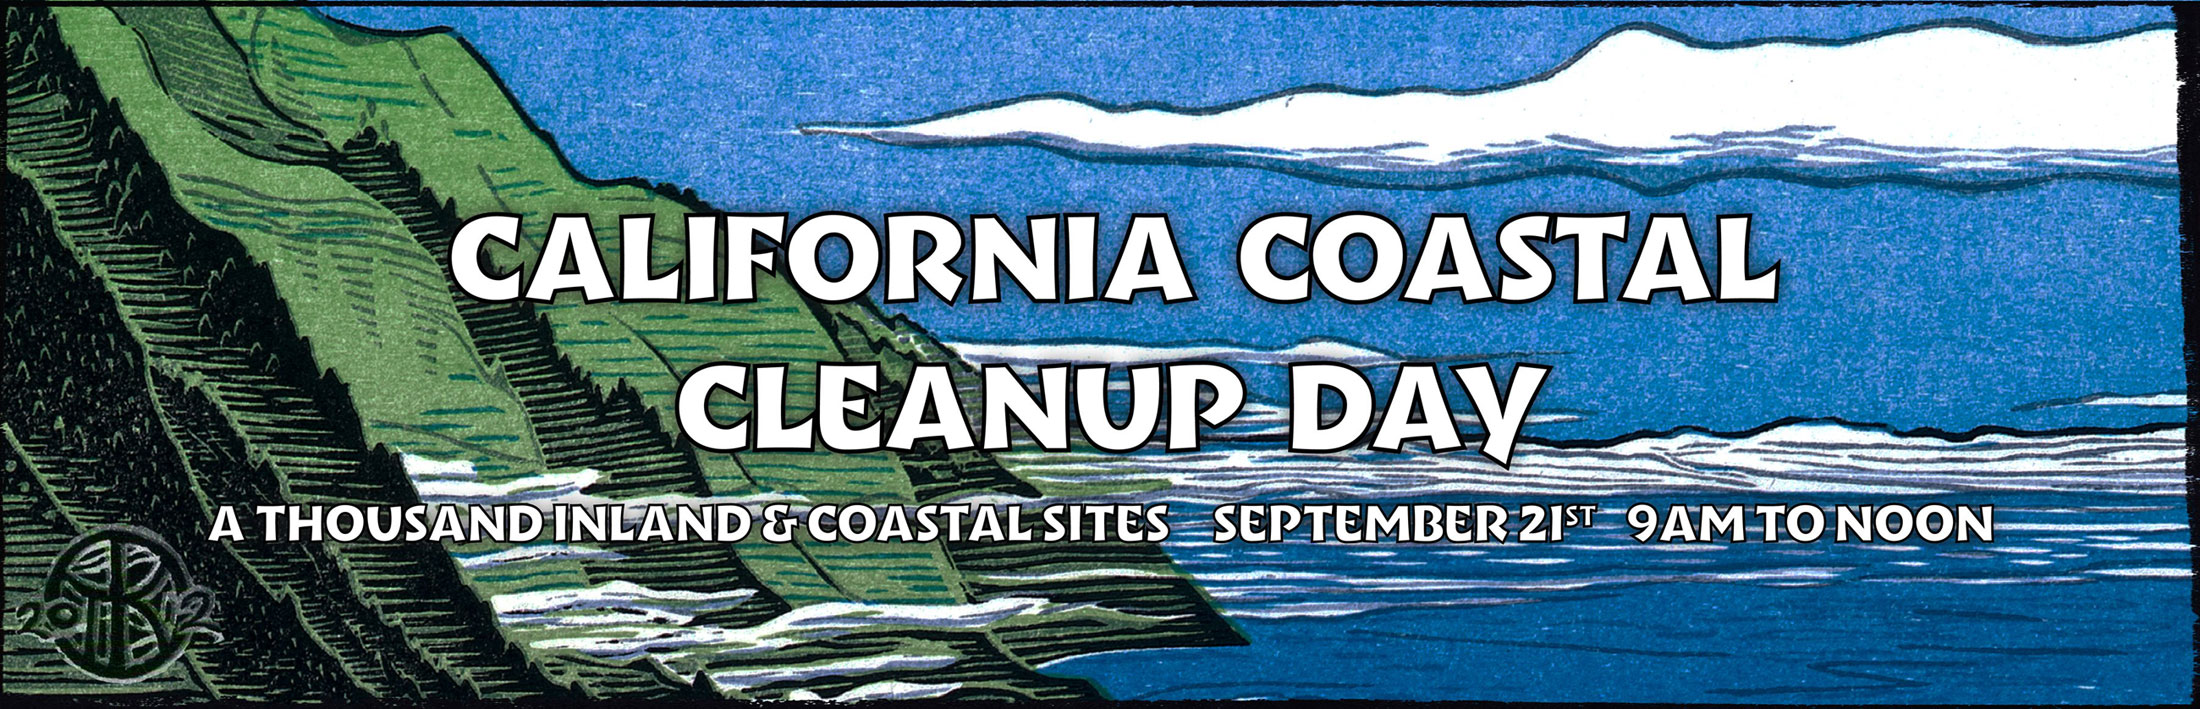 California Coastal Cleanup Day is September 15, 2018, 9am-noon